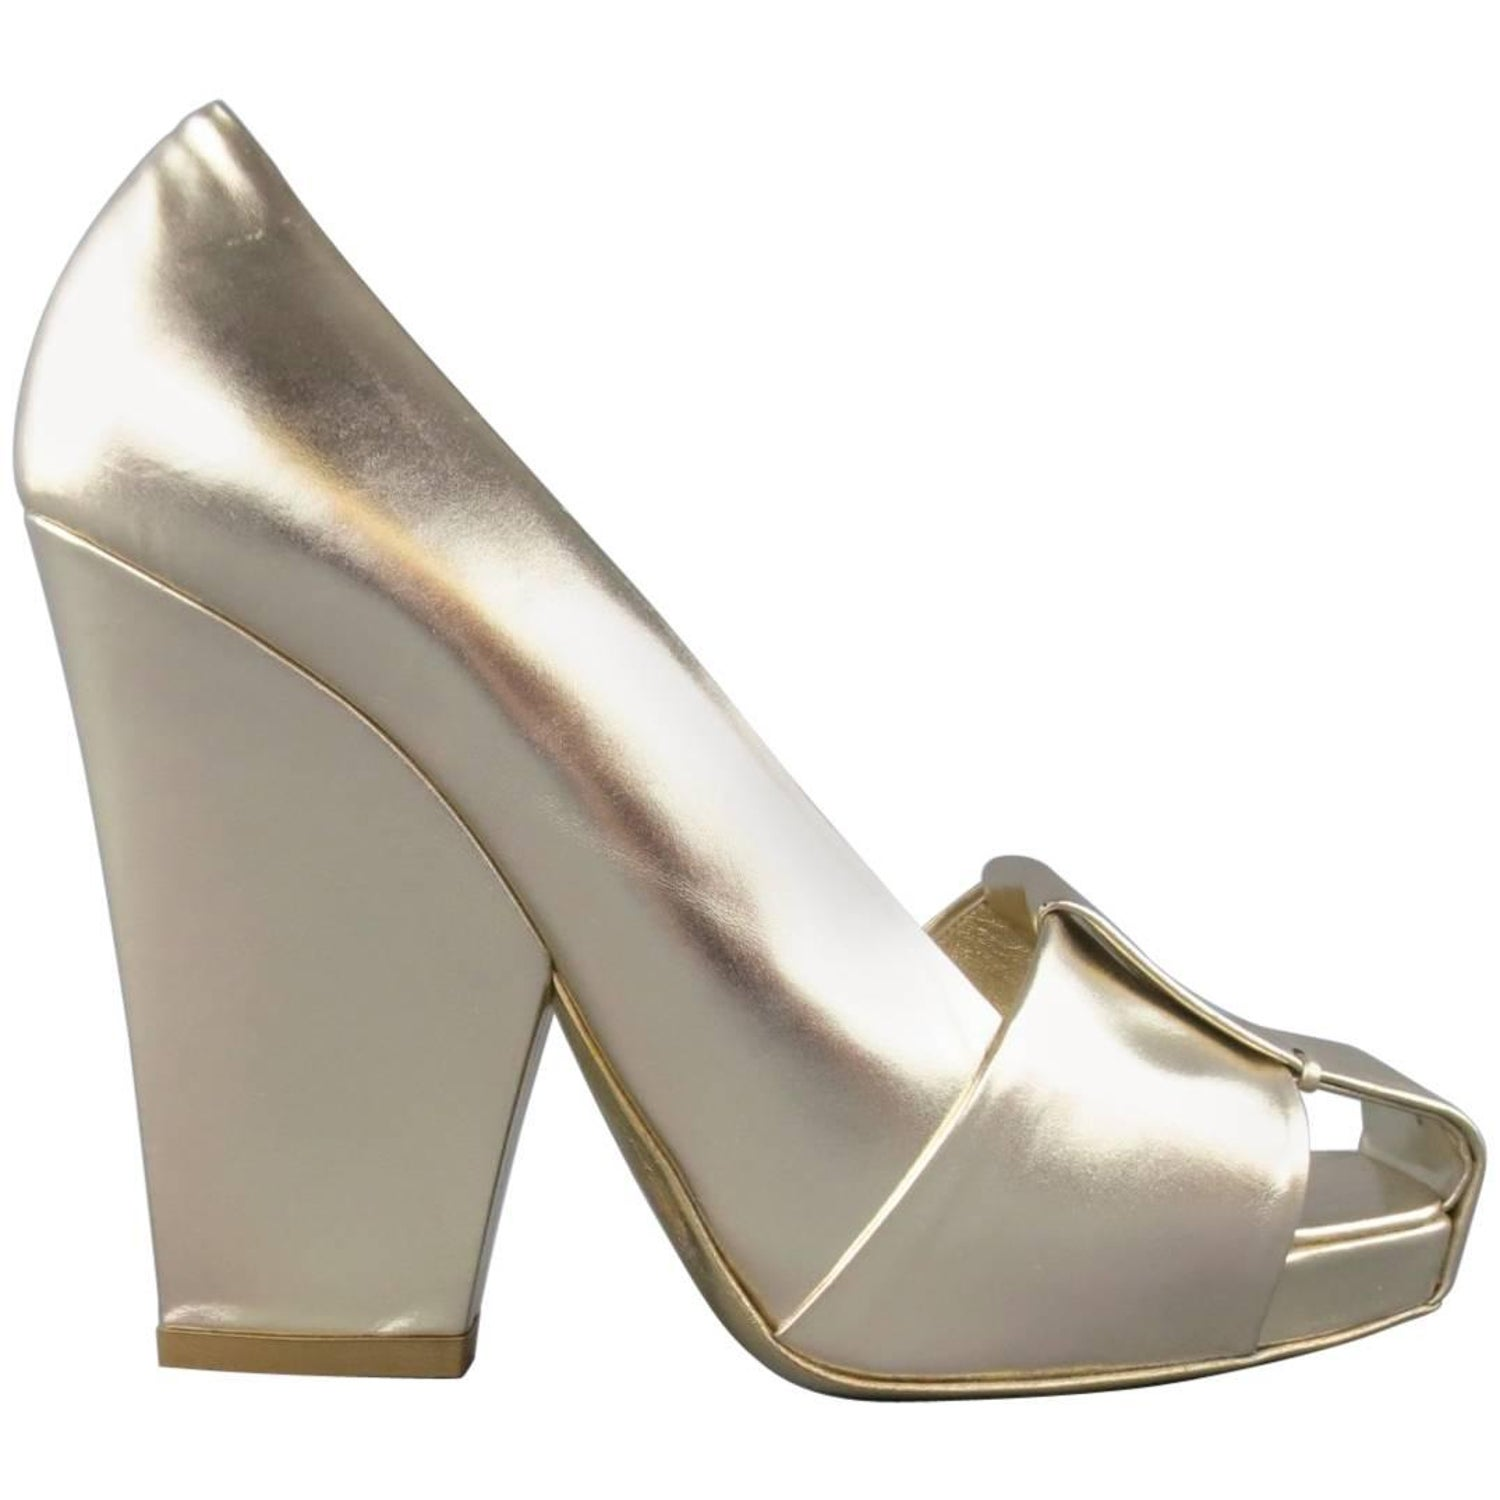 8e3b40788f8 YSL Champagne Colored Satin Strappy Thick Straw Wedges 41 For